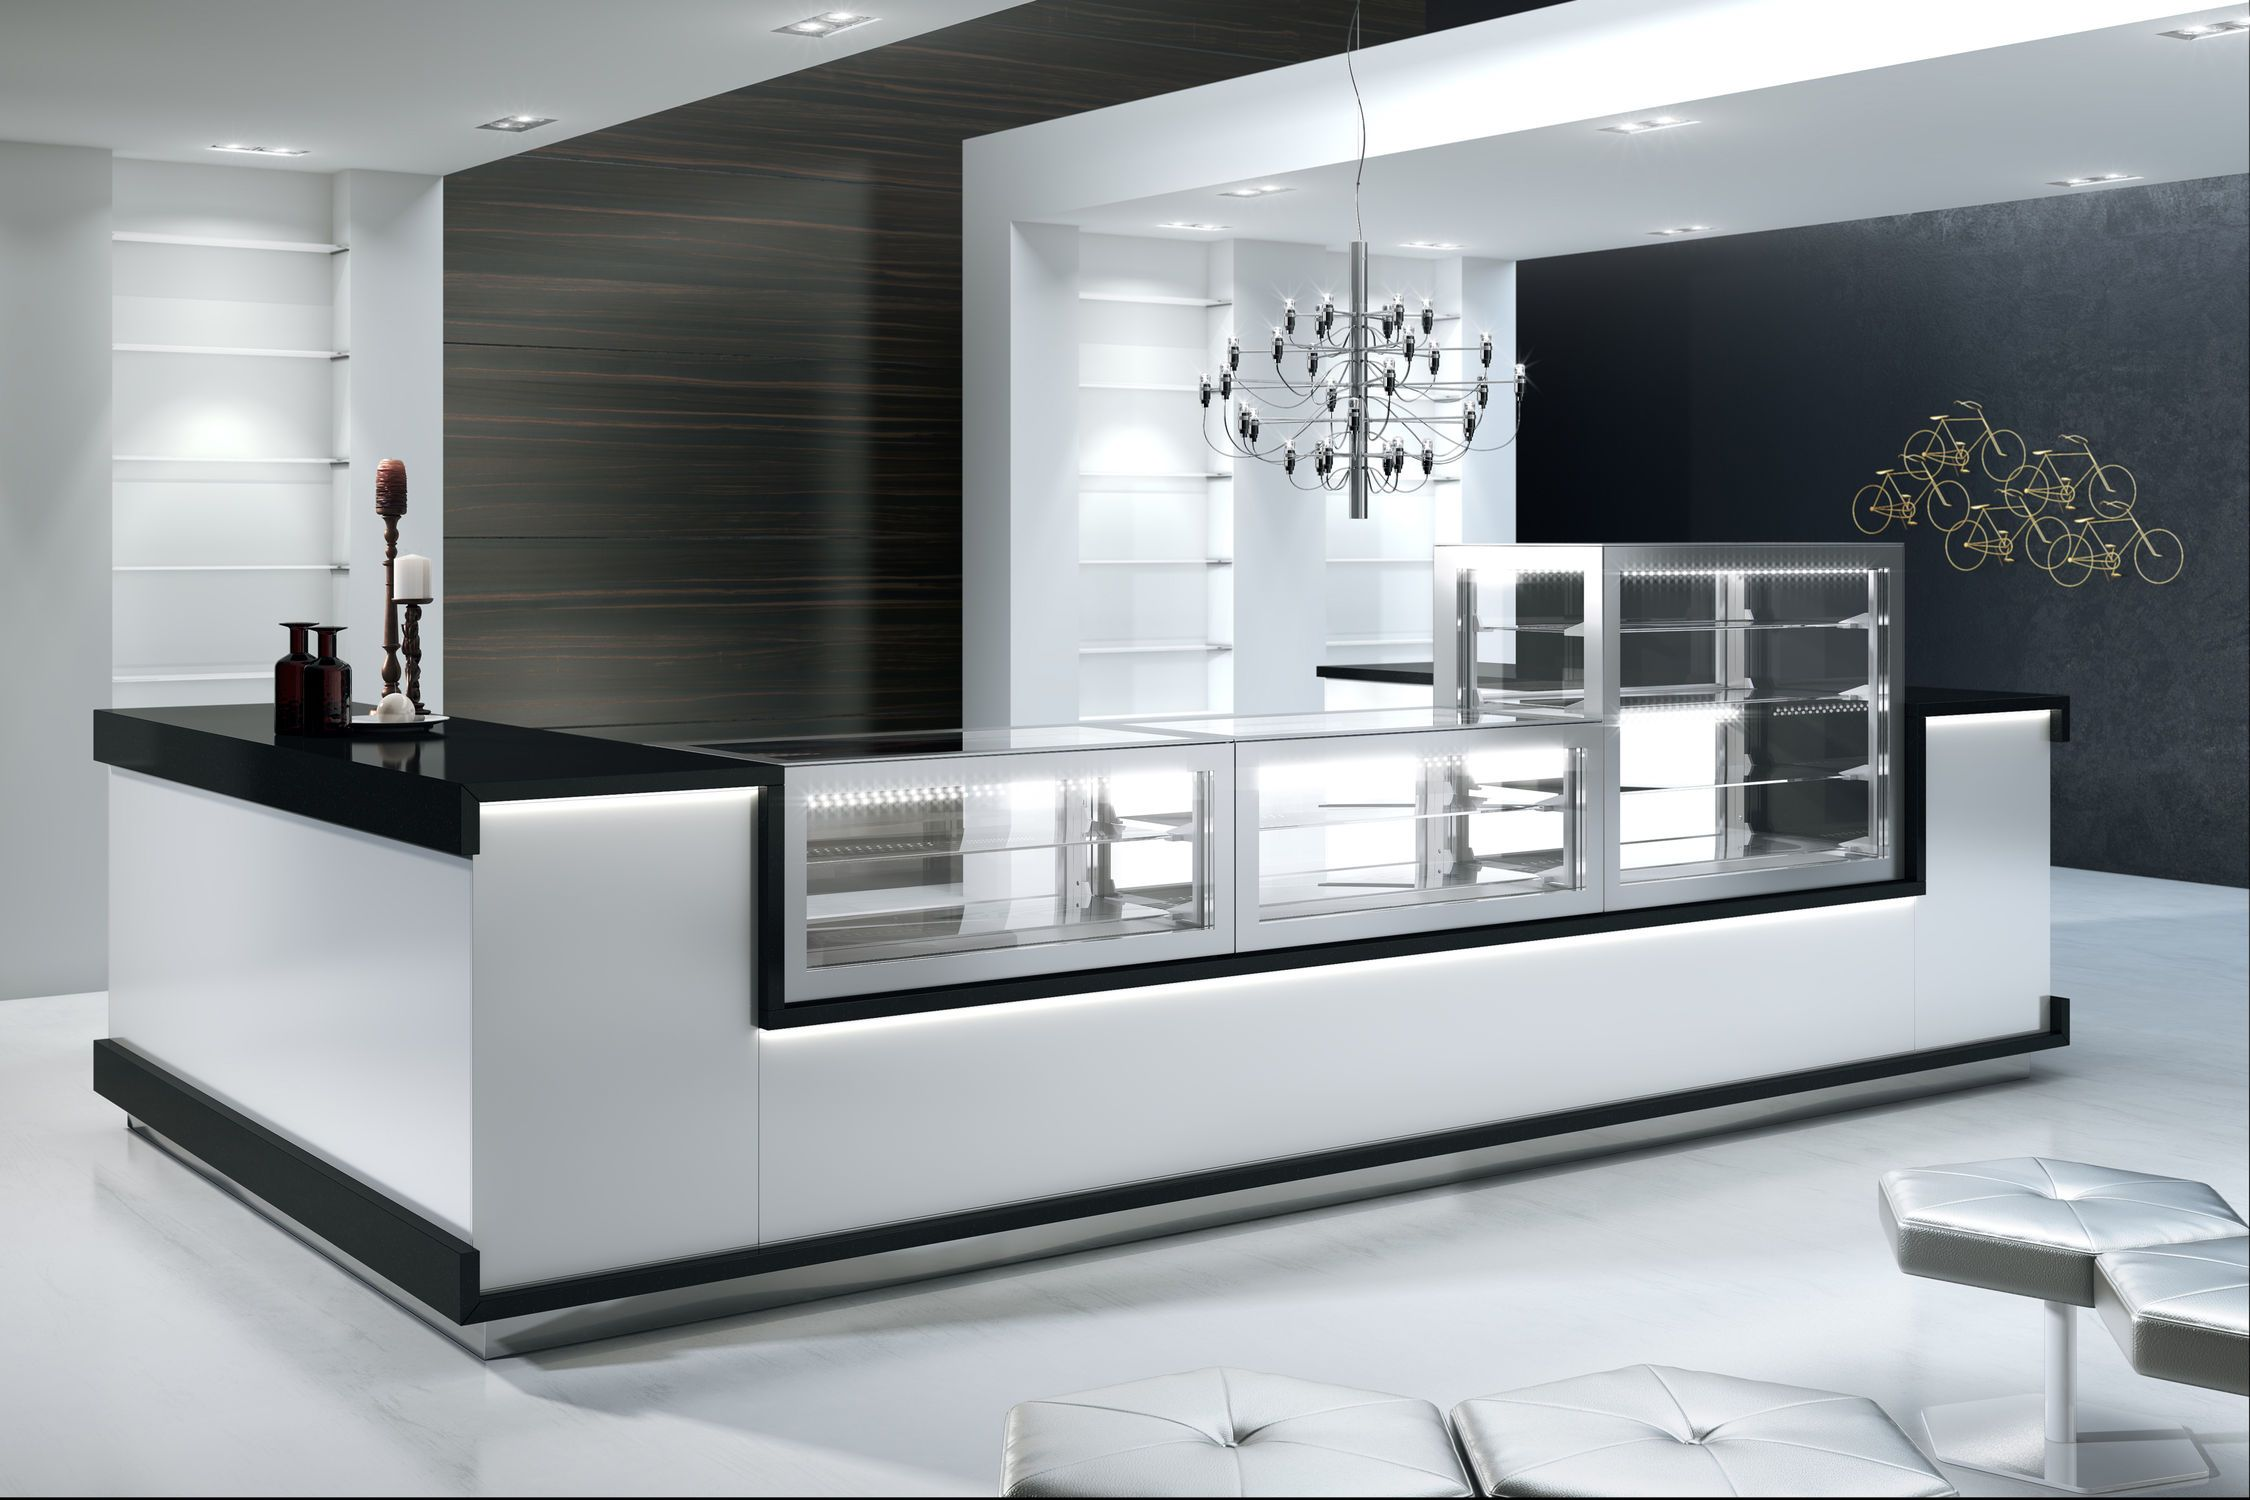 countertop glass refrigerated display cases - Google Search | Crêpe ...